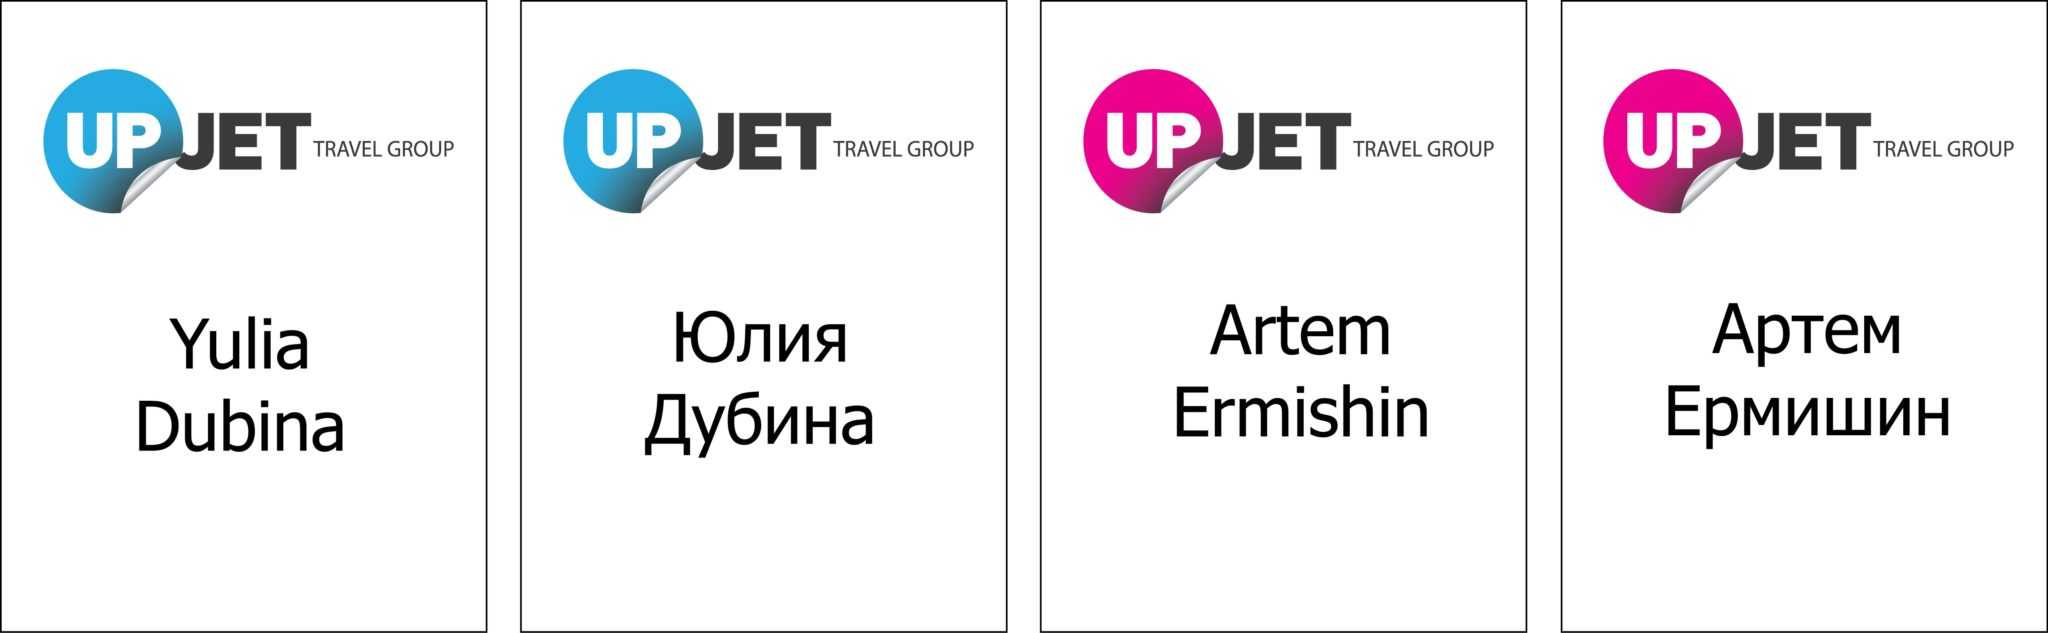 Up Jet travel group - badges